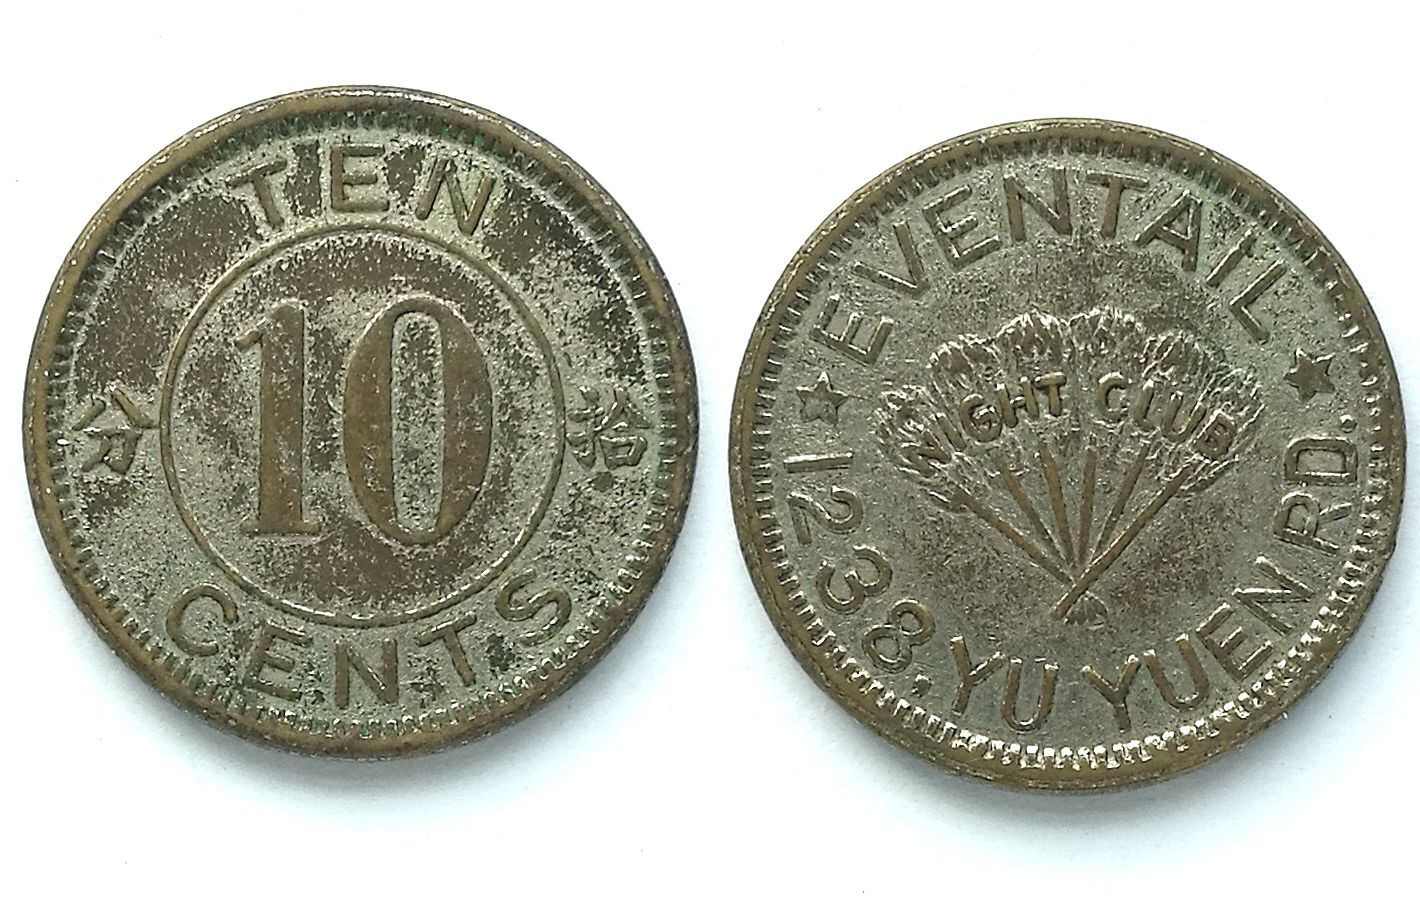 BT036, Shanghai Eventail Night Club Token, 10 Cents, 1930's RARE!